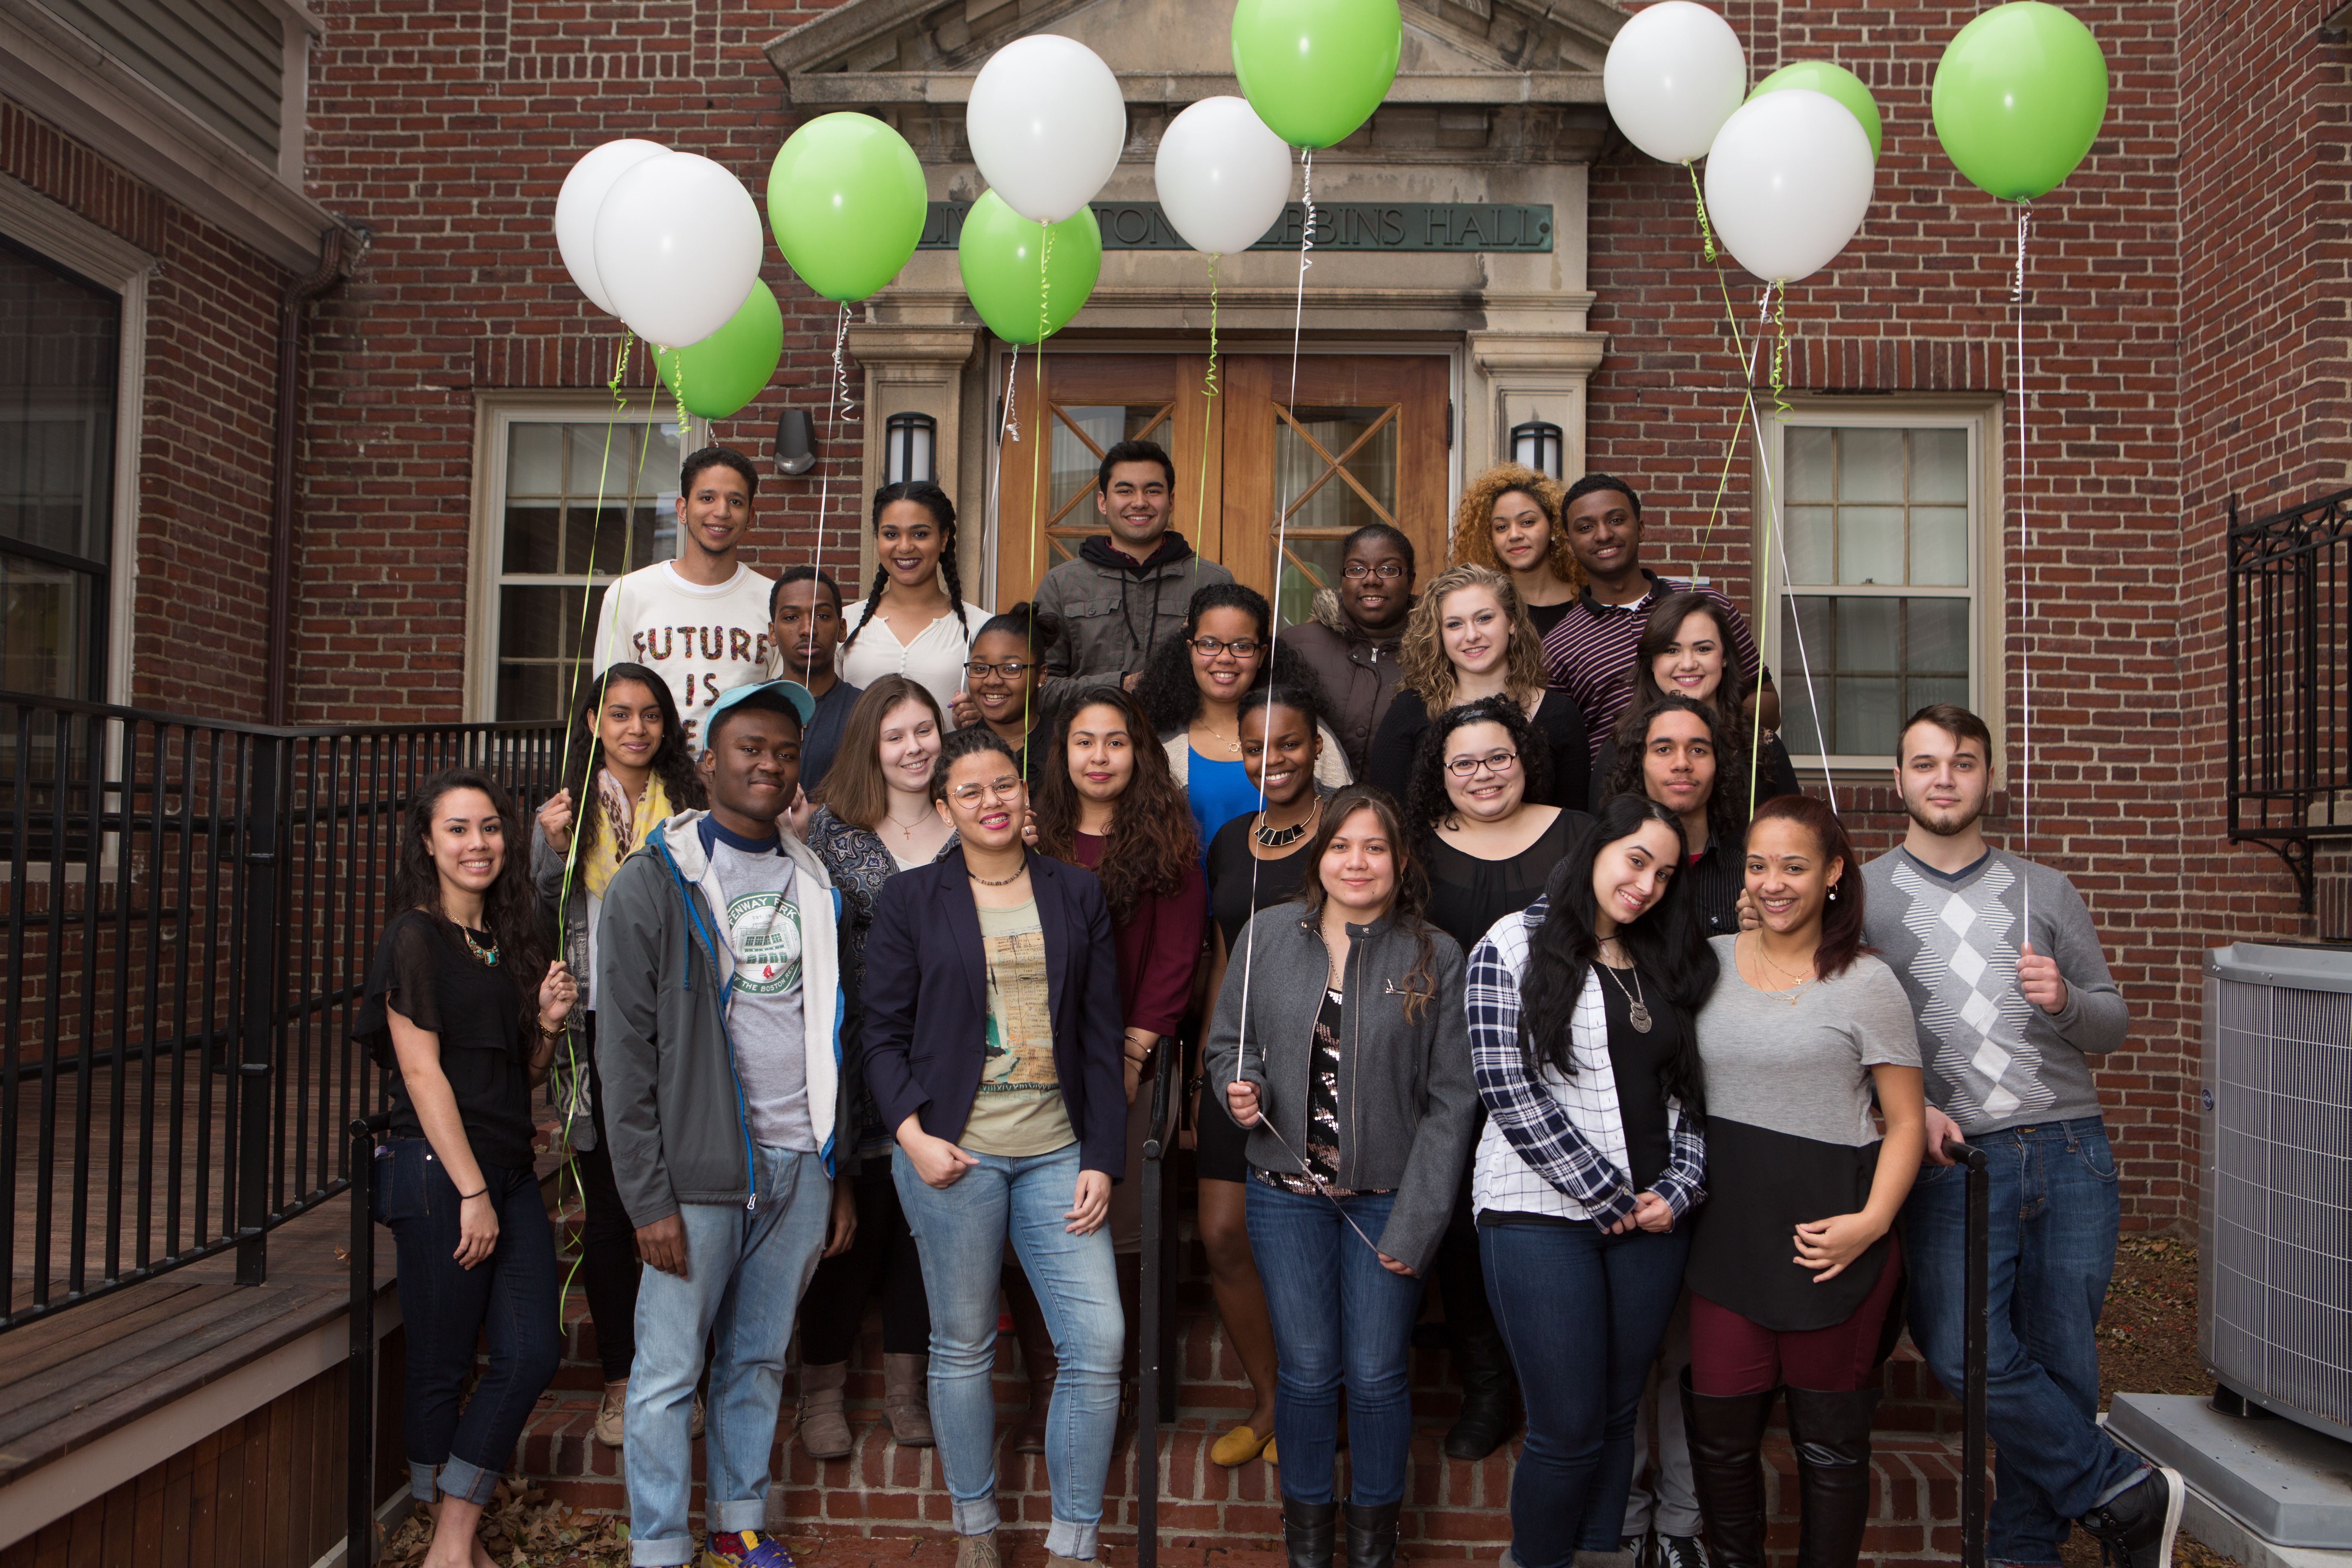 The USI students as freshmen standing outside Alumni Hall with green and white balloons.